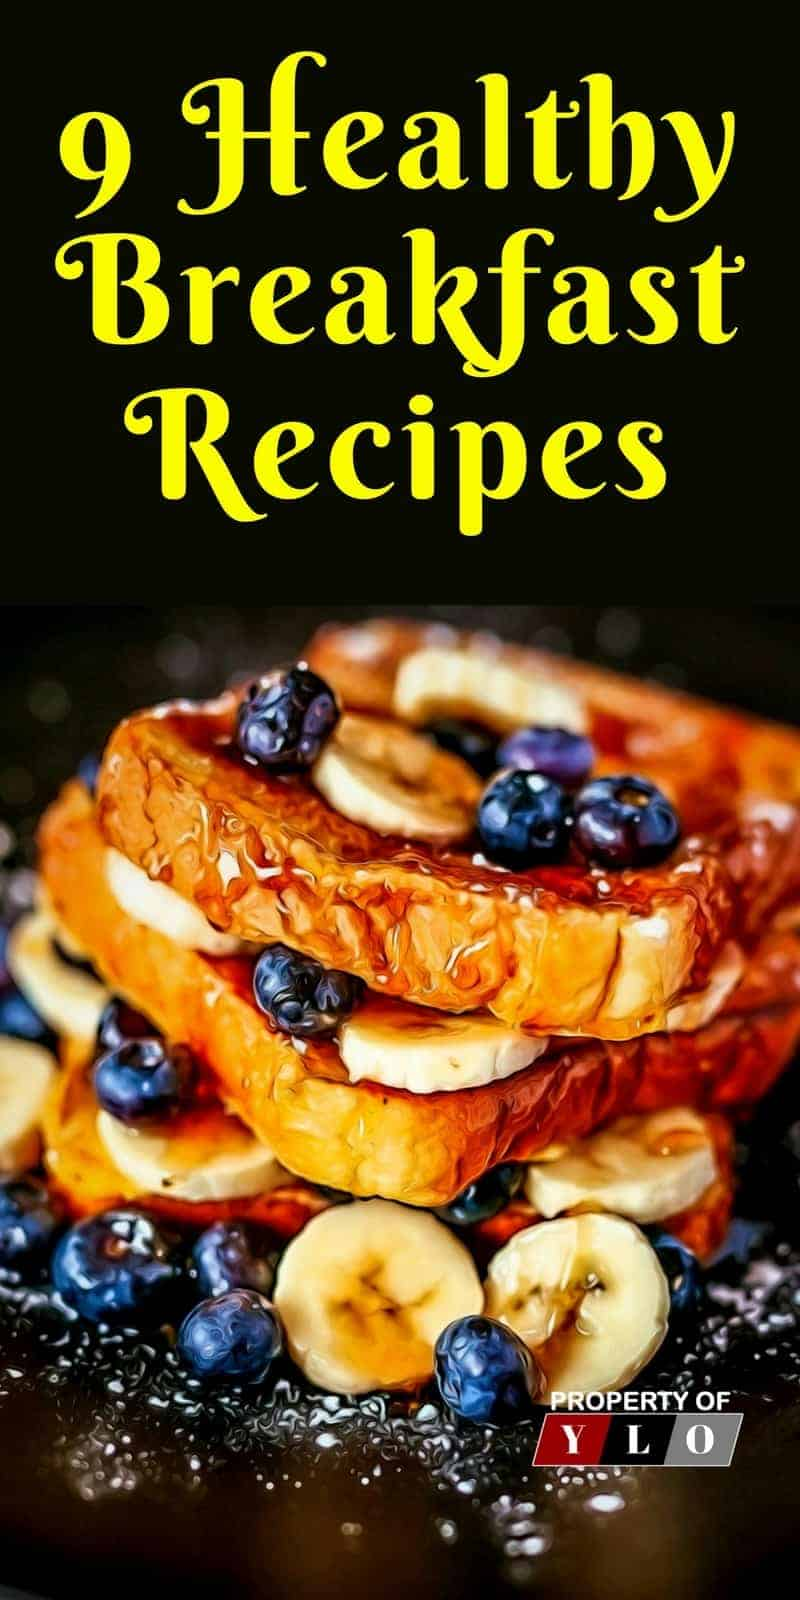 9 of My Favorite Healthy Breakfast Recipes and 1 Very Extravagant One for Special Days. This is great for Recipes, Weight Loss Food, Weight Loss Recipes, Healthy Meals, Weight Loss Snack Recipes, Weight Loss Dinner Recipes, Weight Loss Dessert Recipes, Weight Loss Low Carb Recipes, Weight Loss Lunch Recipes, Weight Loss Breakfast Recipes.